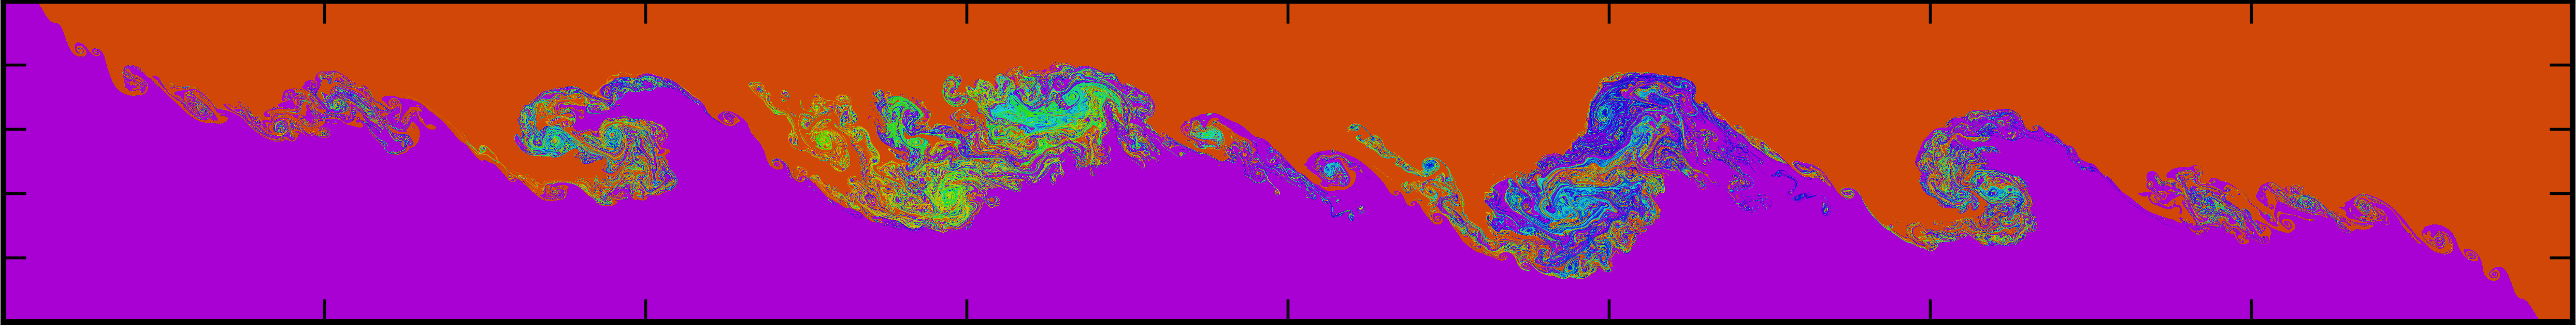 Plot of buoyancy within a numerical   simulation of an exchange flow